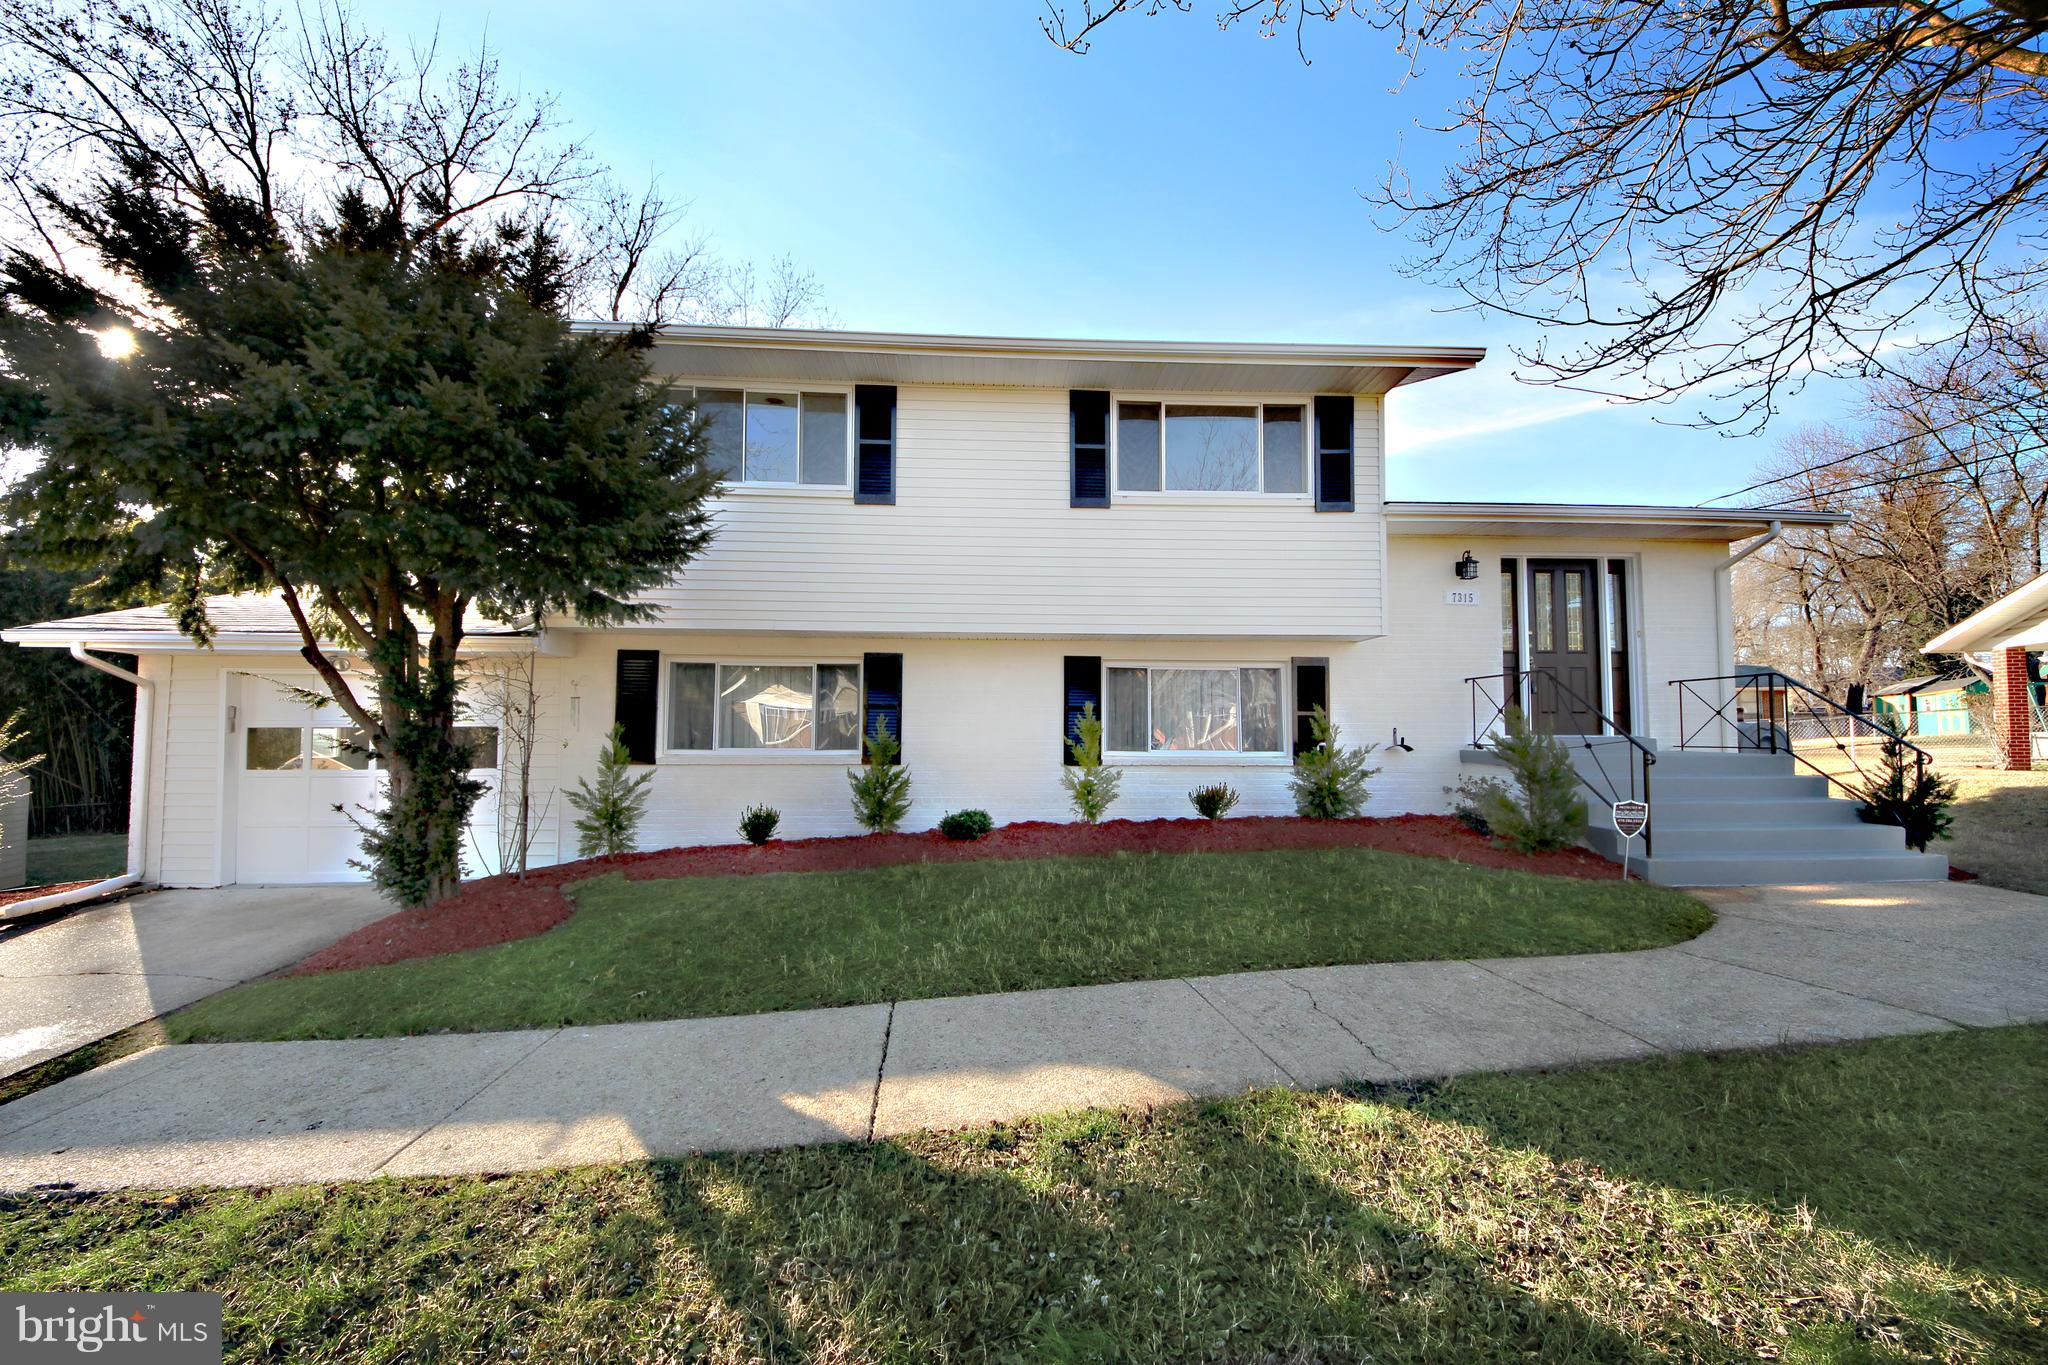 7315 WESSEX DRIVE, TEMPLE HILLS, MD 20748